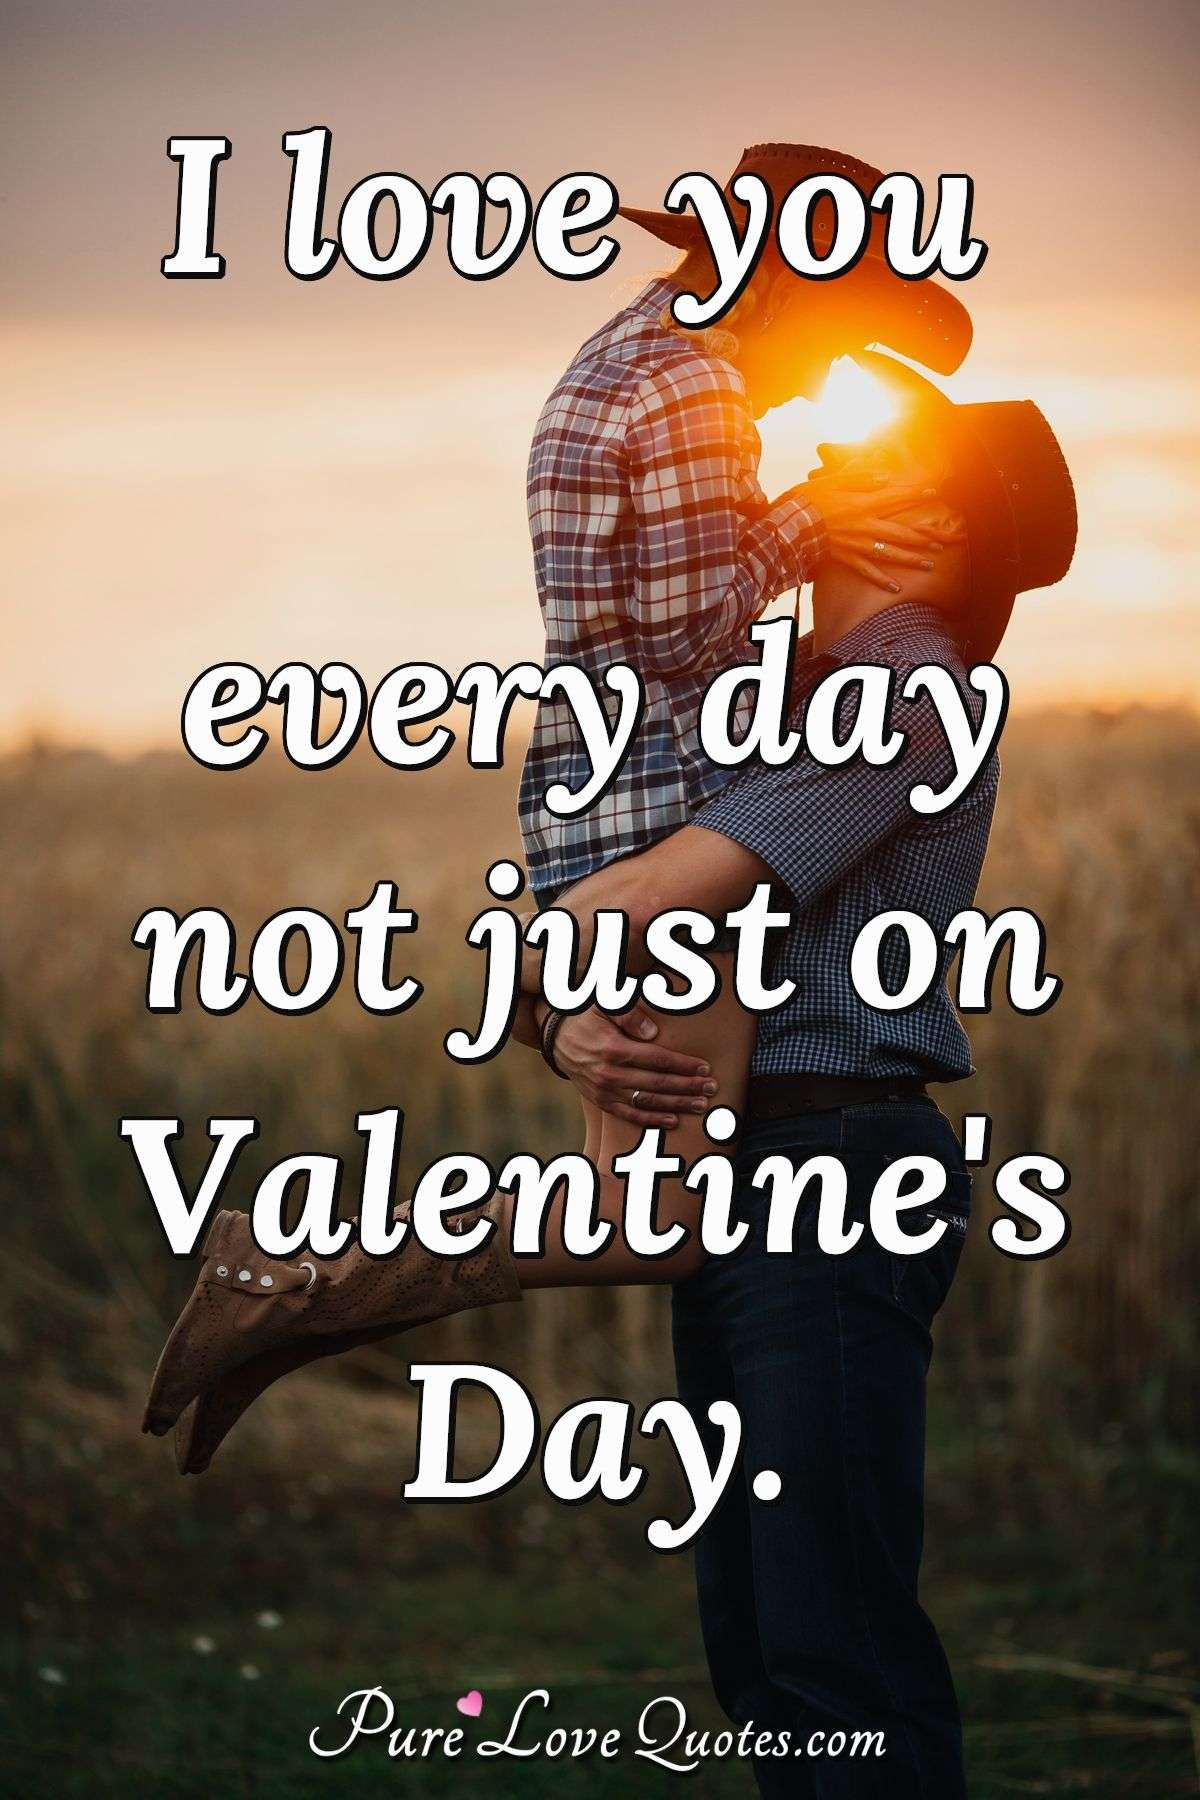 I love you every day not just on Valentine's Day. - Anonymous